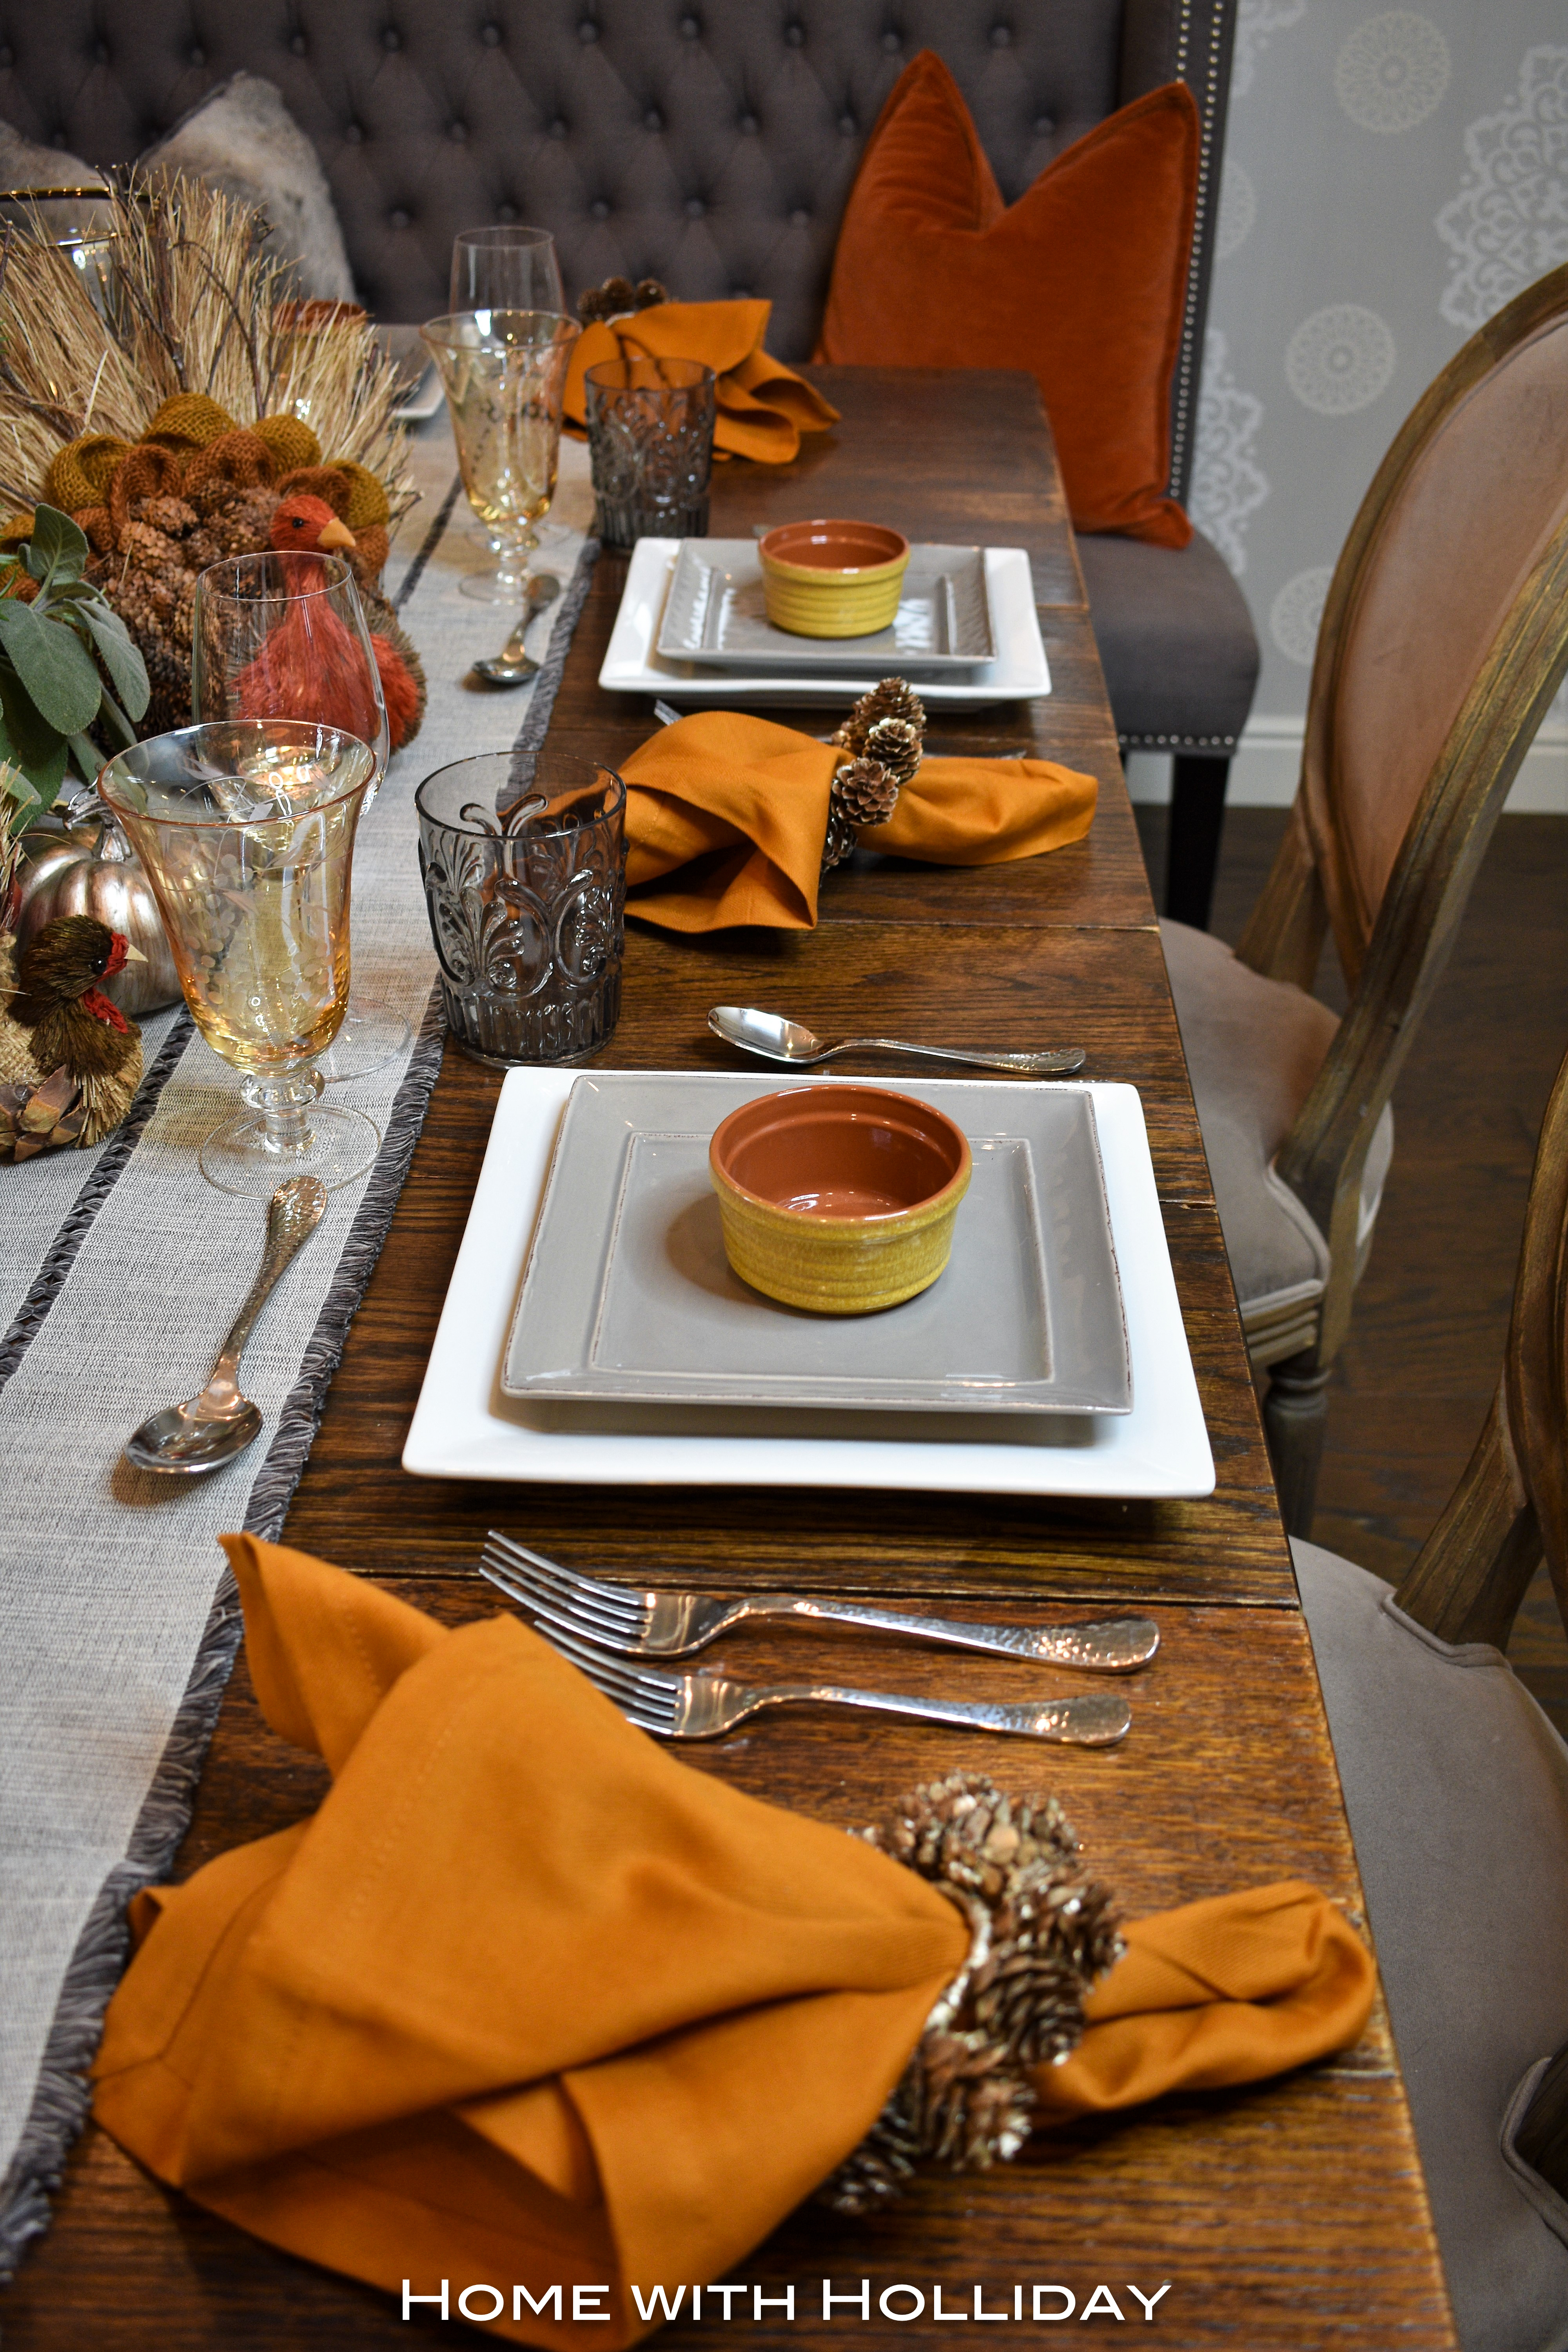 Best Fall Decor on Amazon for Table Settings on Amazon